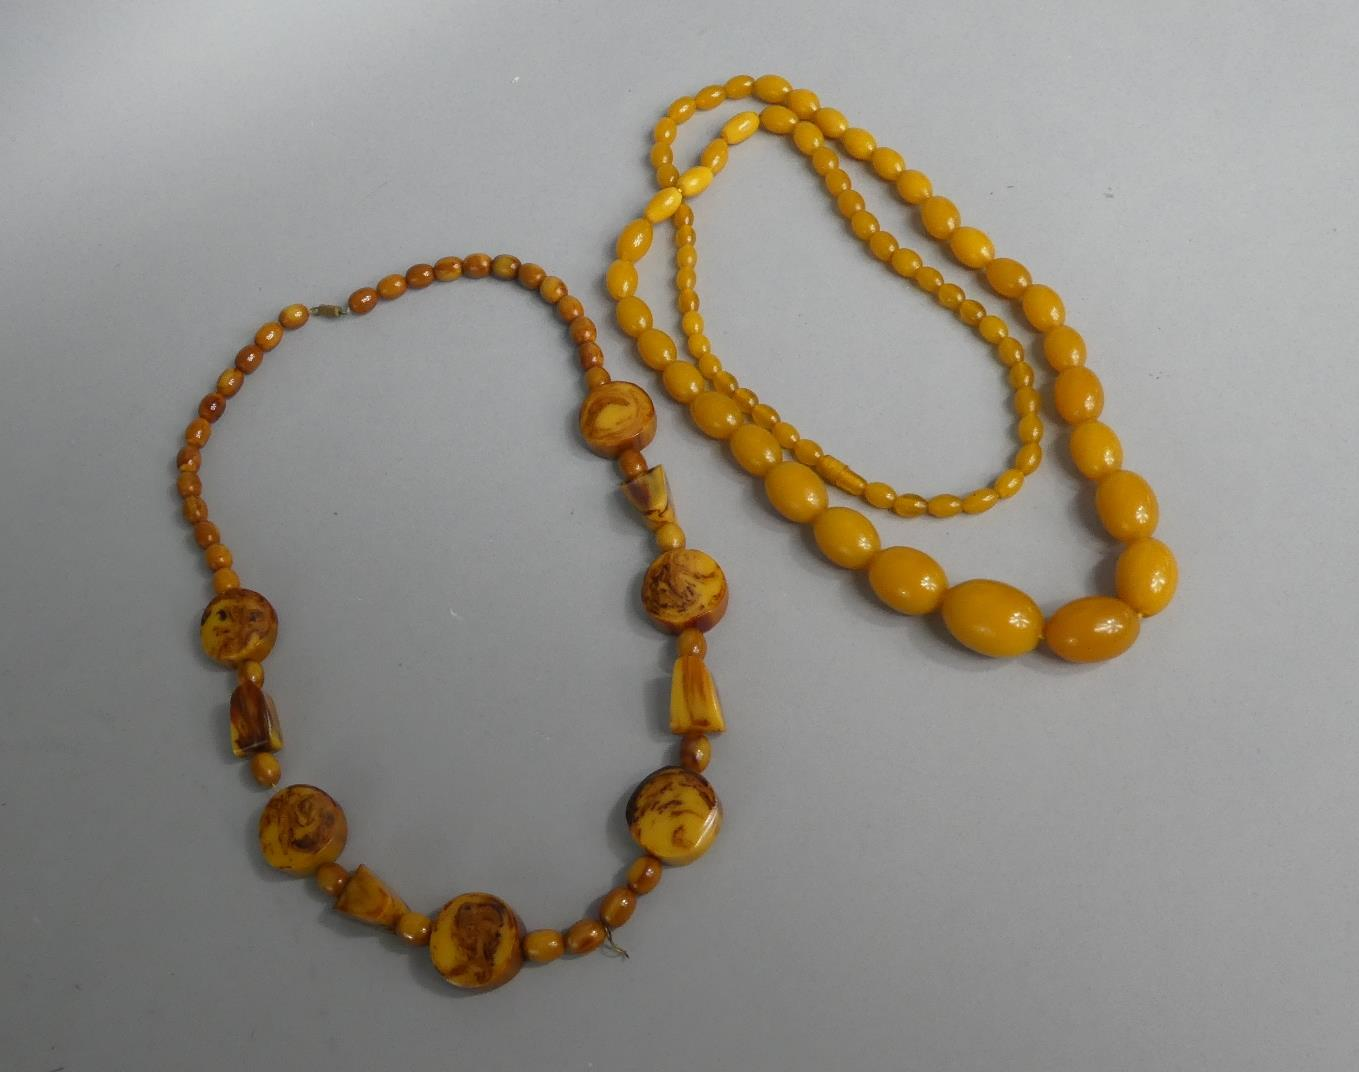 Lot 324 - A Reconstituted Amber Necklace and a Faux 'Butterscotch' Amber Necklace